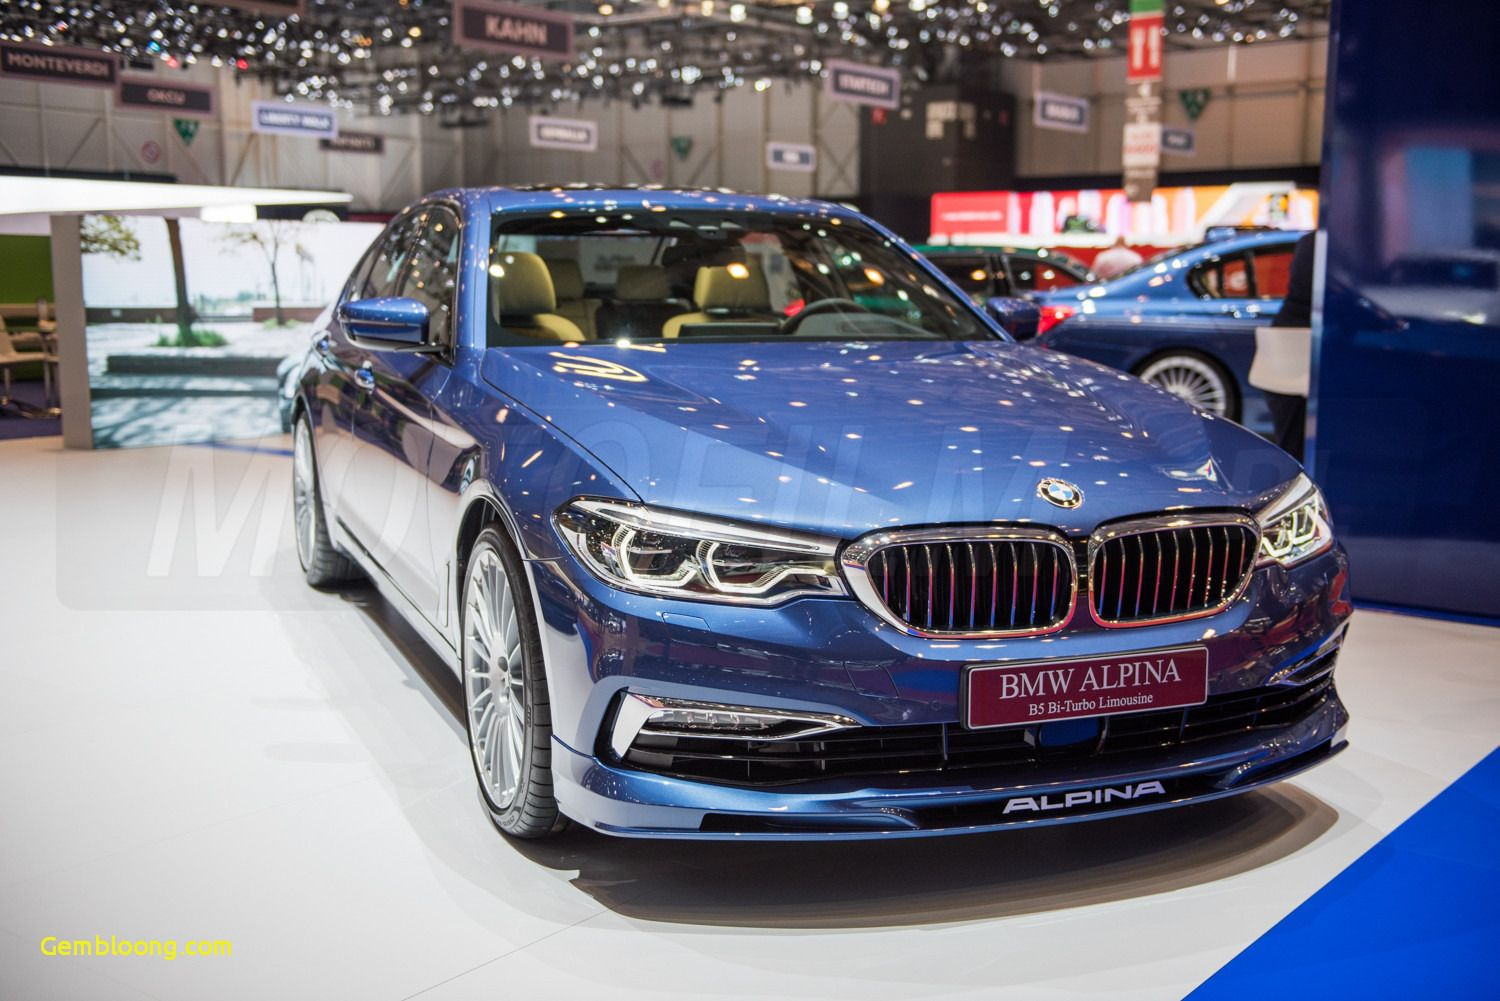 Bolder 2020 Alpina B5 Biturbo Touring Coming As The Unofficial M5